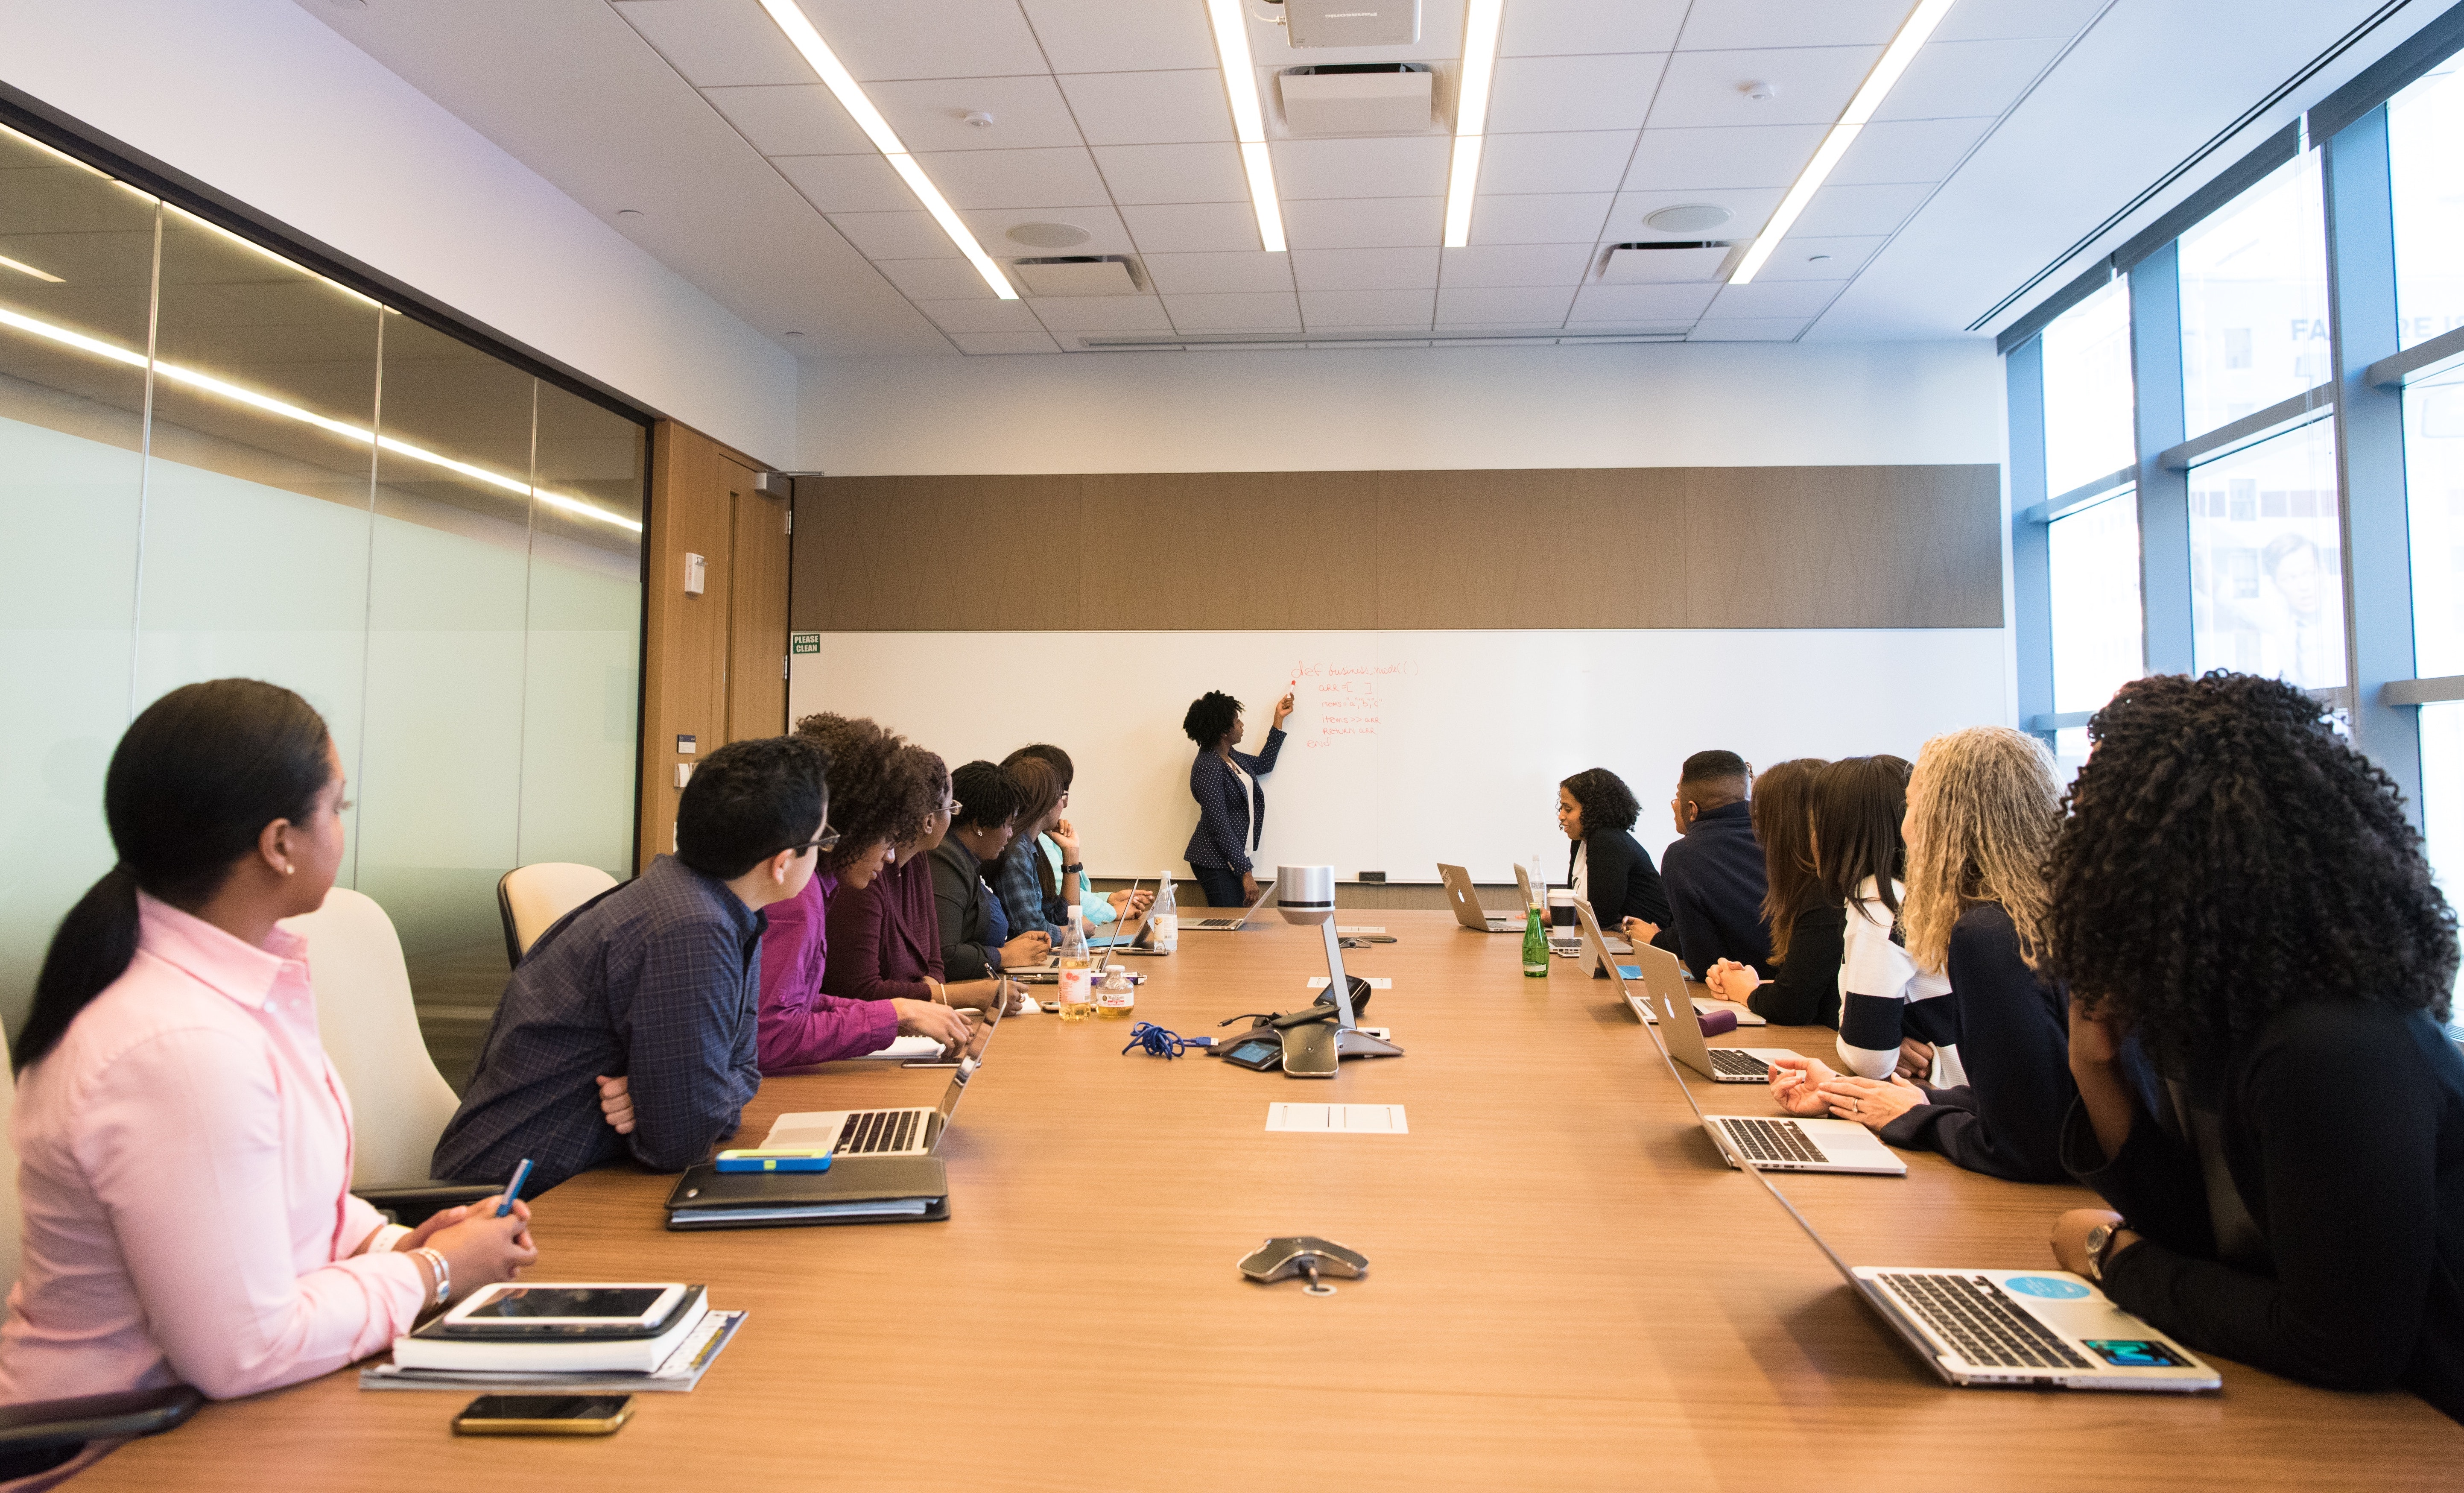 boardroom-conference-conference-room-1181396